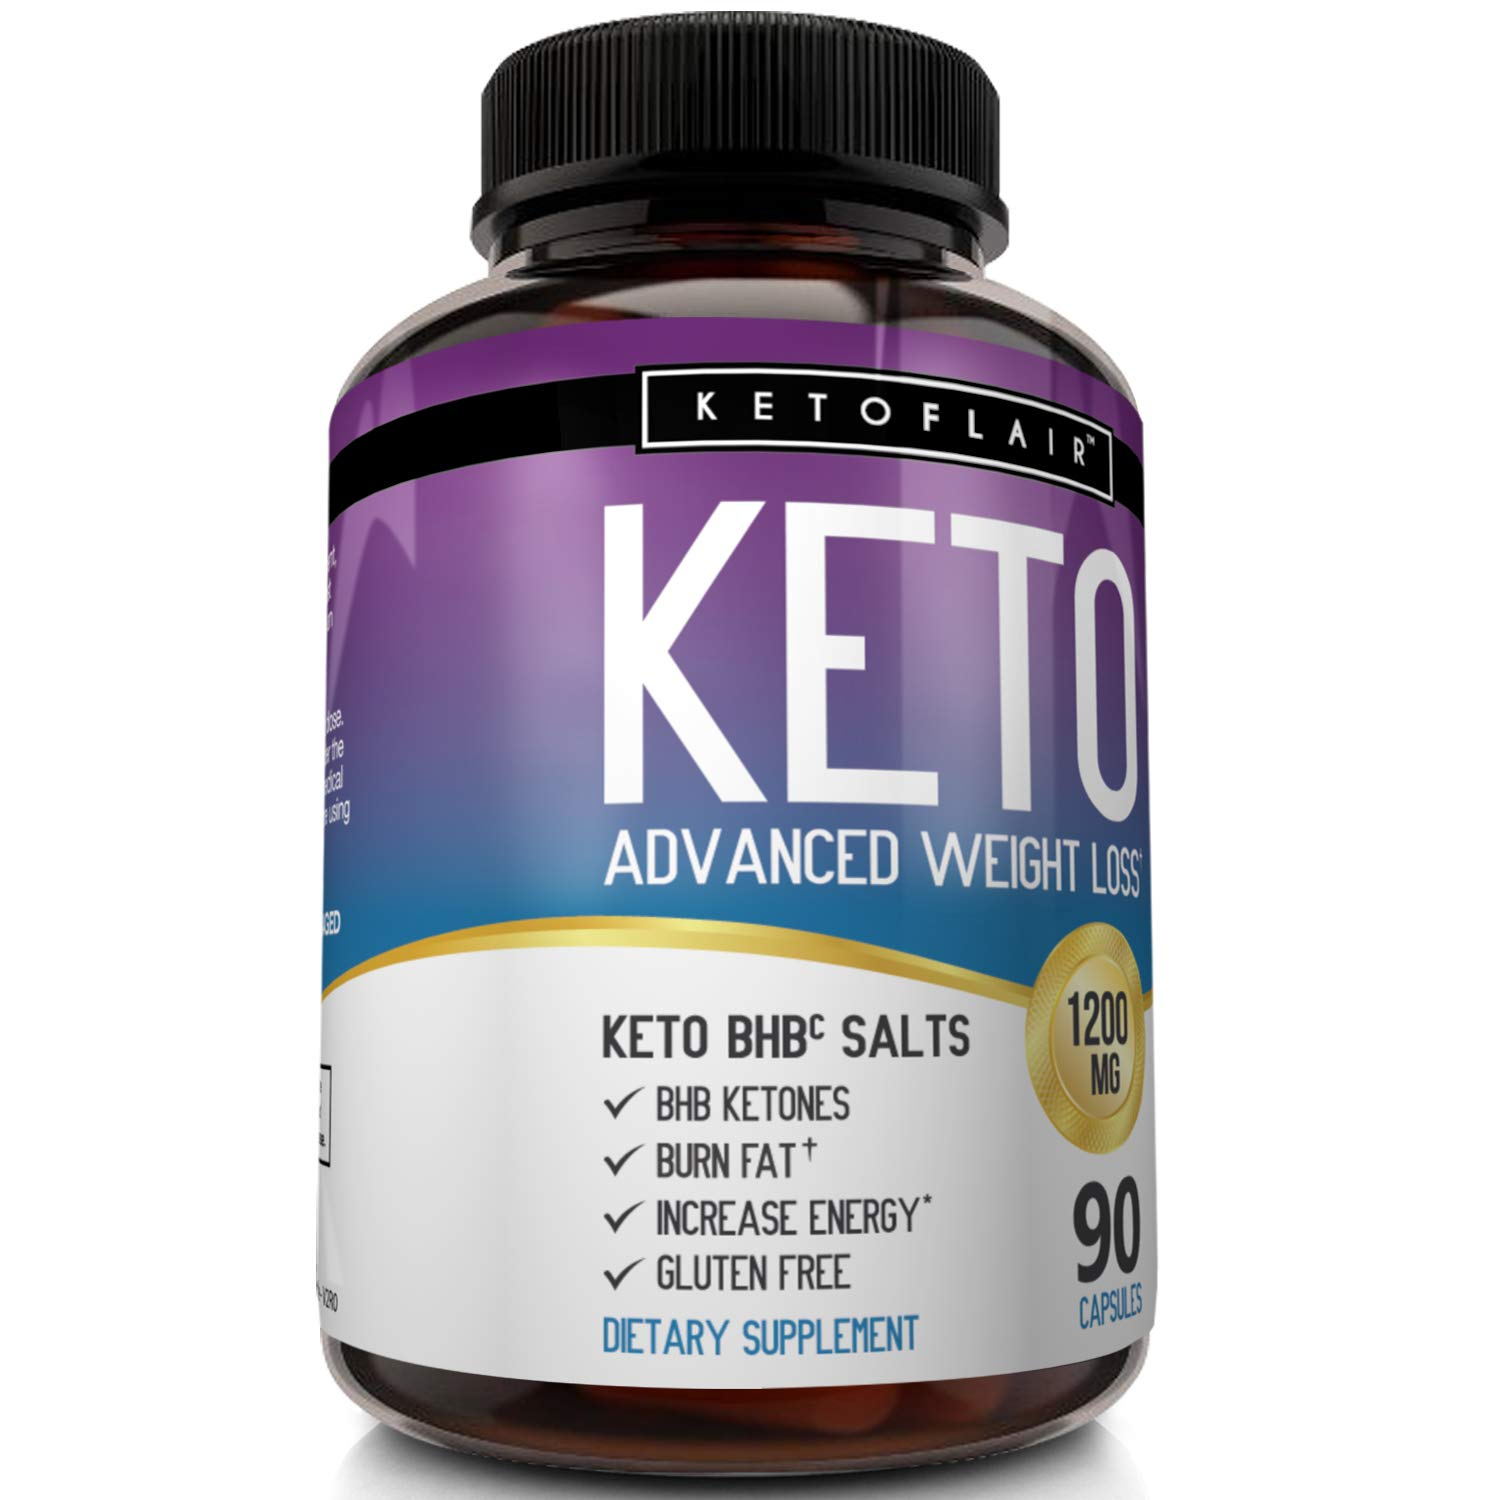 Best Keto Diet Pills GoBHB 1200mg, 90 Capsules Advanced Weight Loss Ketosis Supplement - Natural BHB Salts (beta hydroxybutyrate) Ketogenic Fat Burner, Carb Blocker, Non-GMO - Best Weight Loss Support by NutriFlair (Image #8)